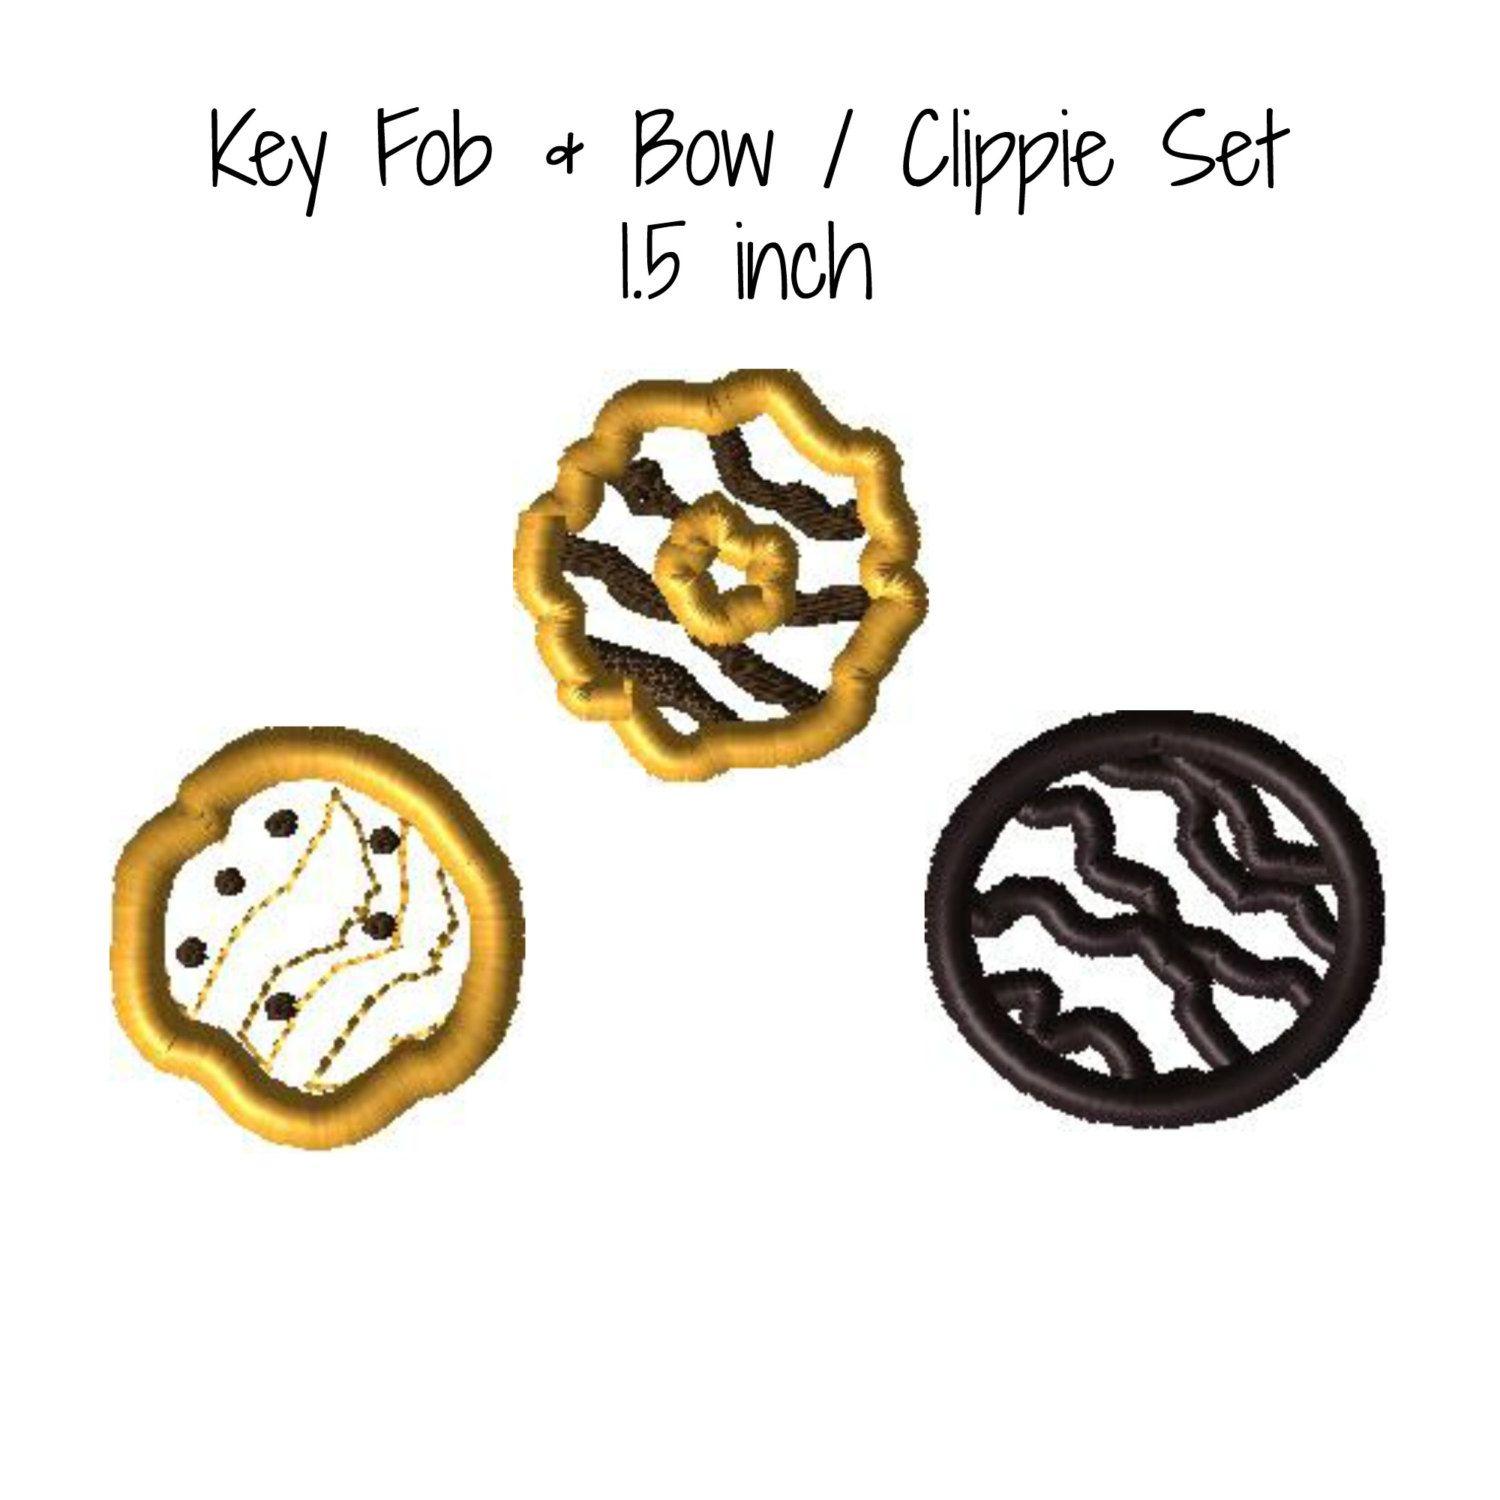 Scout Cookie Key Fob Bow Clippie Applique Set Embroidery Machine Design 3 Designs 1.5 inch Instant Download by appliqueswcharacter on Etsy